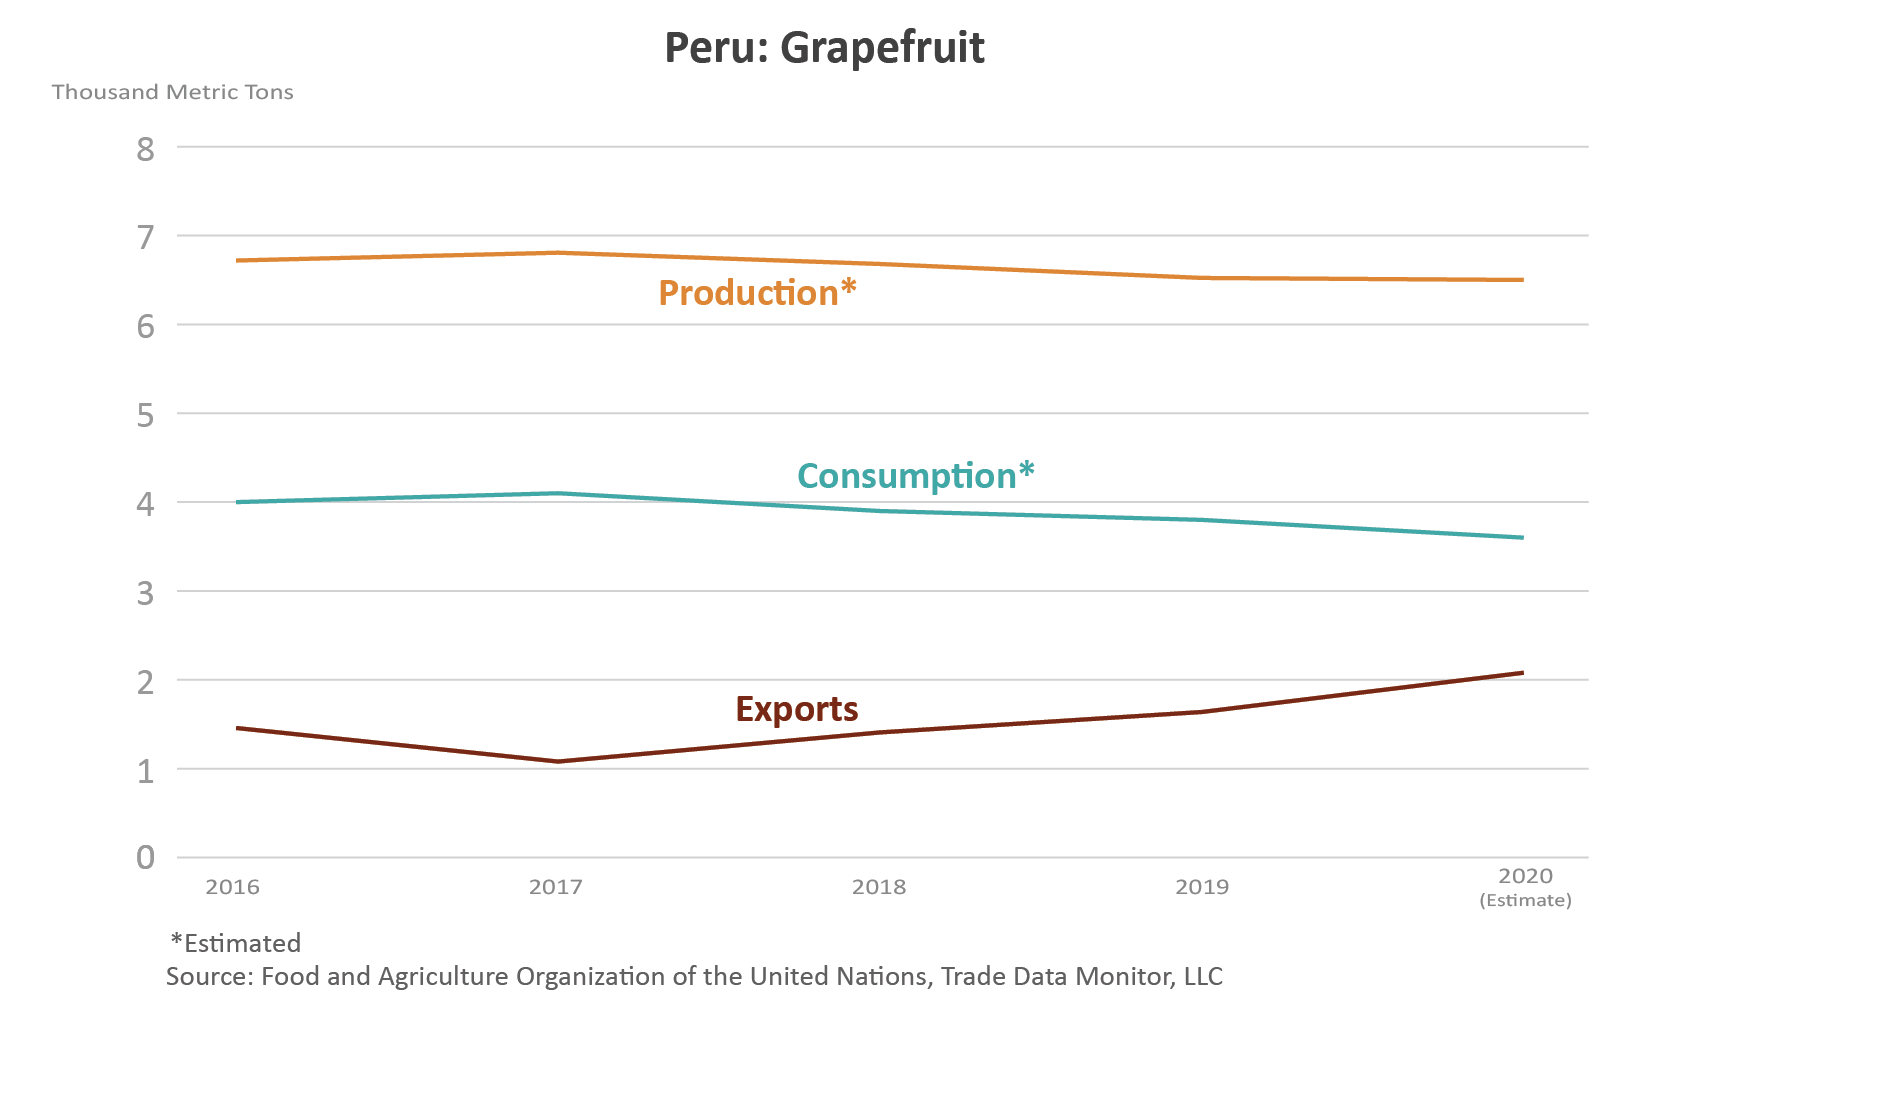 Line graph showings the volume of production, consumption, and exports, for Peru's grapefruits